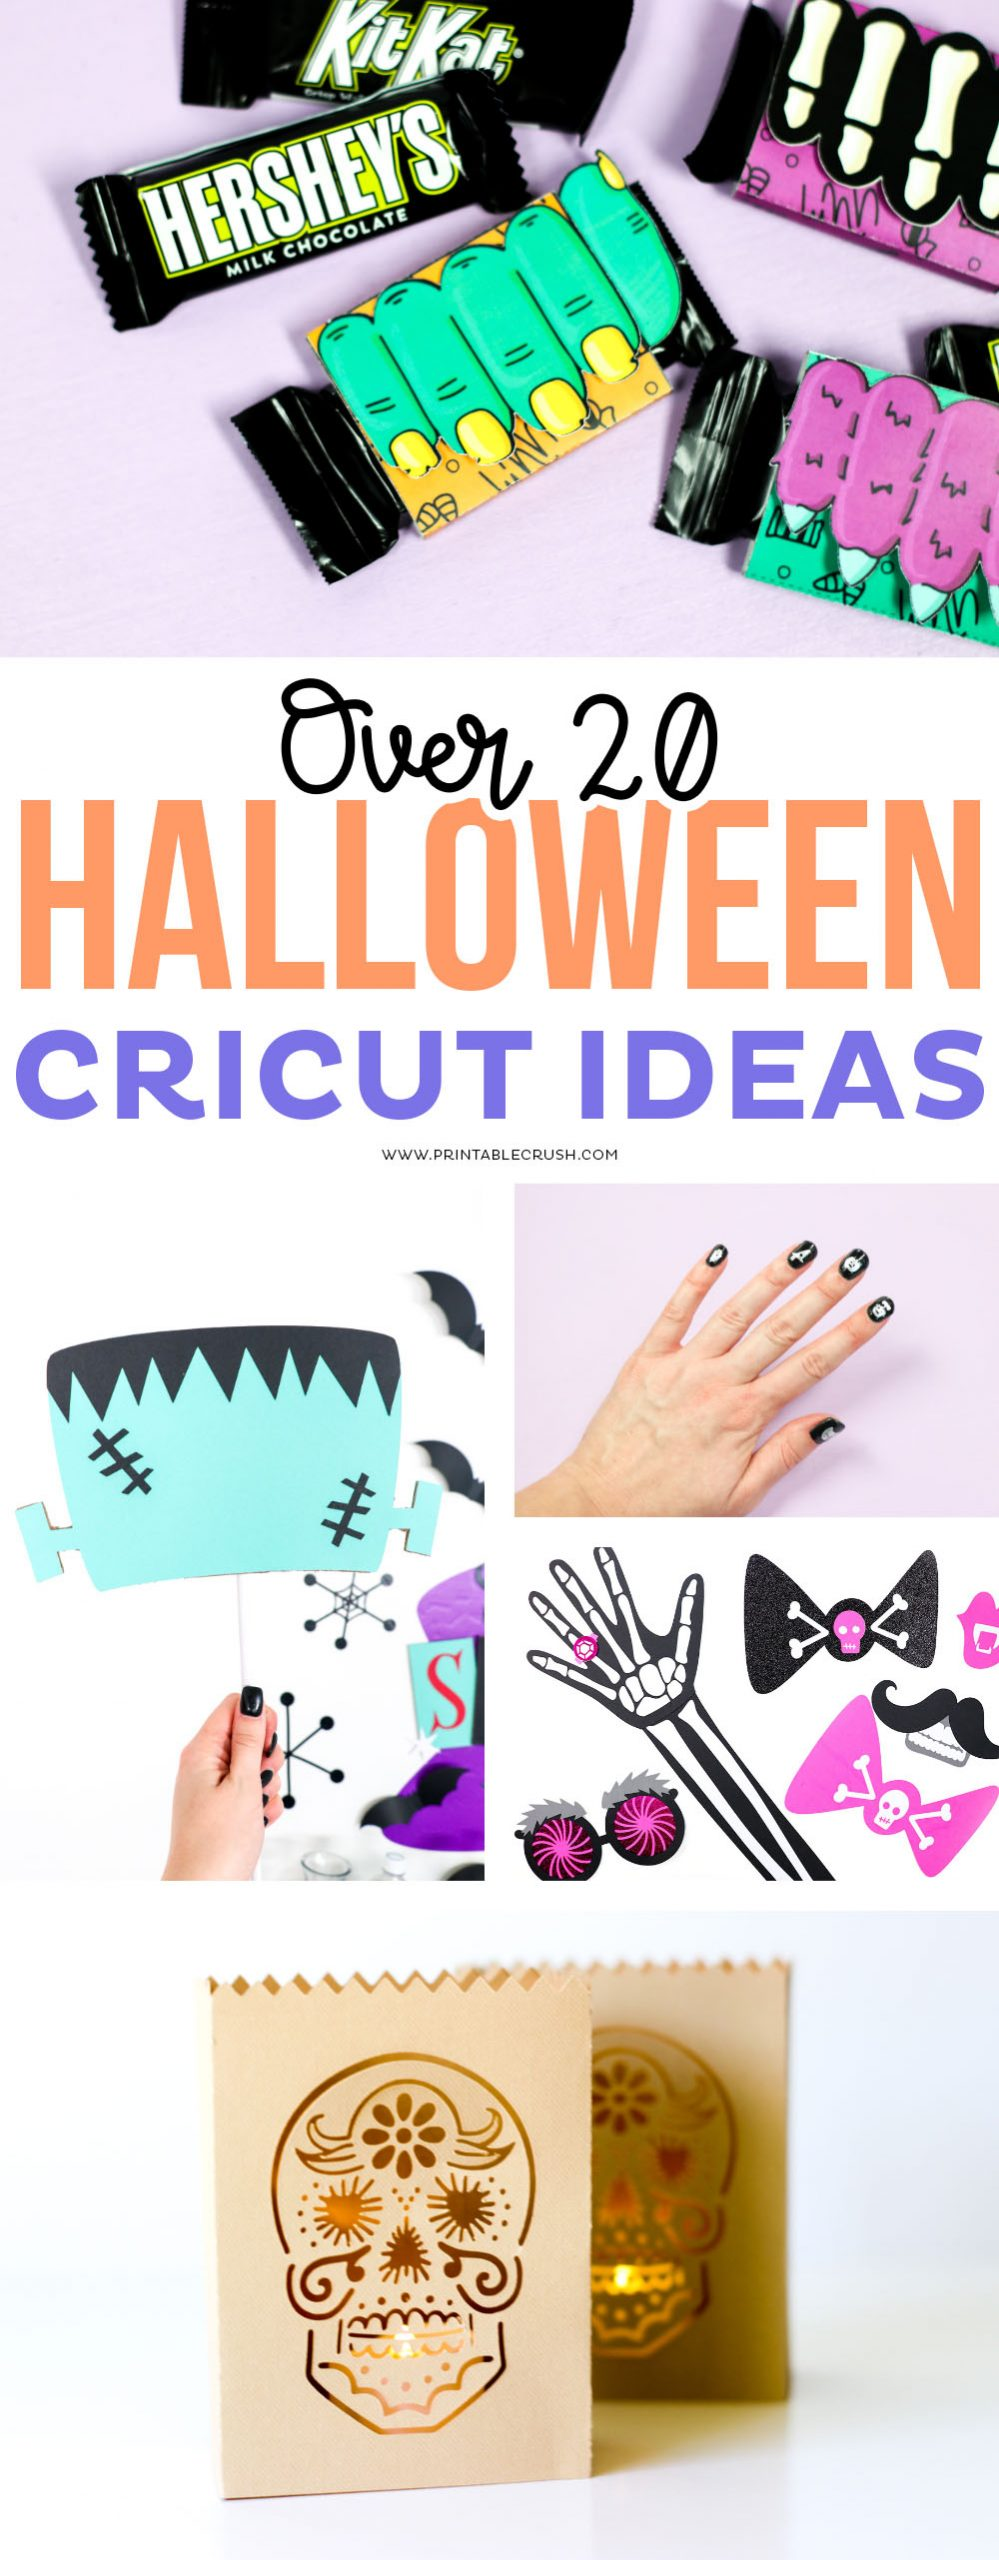 Over 20 Halloween Cricut Ideas - Halloween print and cut files, photo prop ideas, trick or treat ideas, and more!